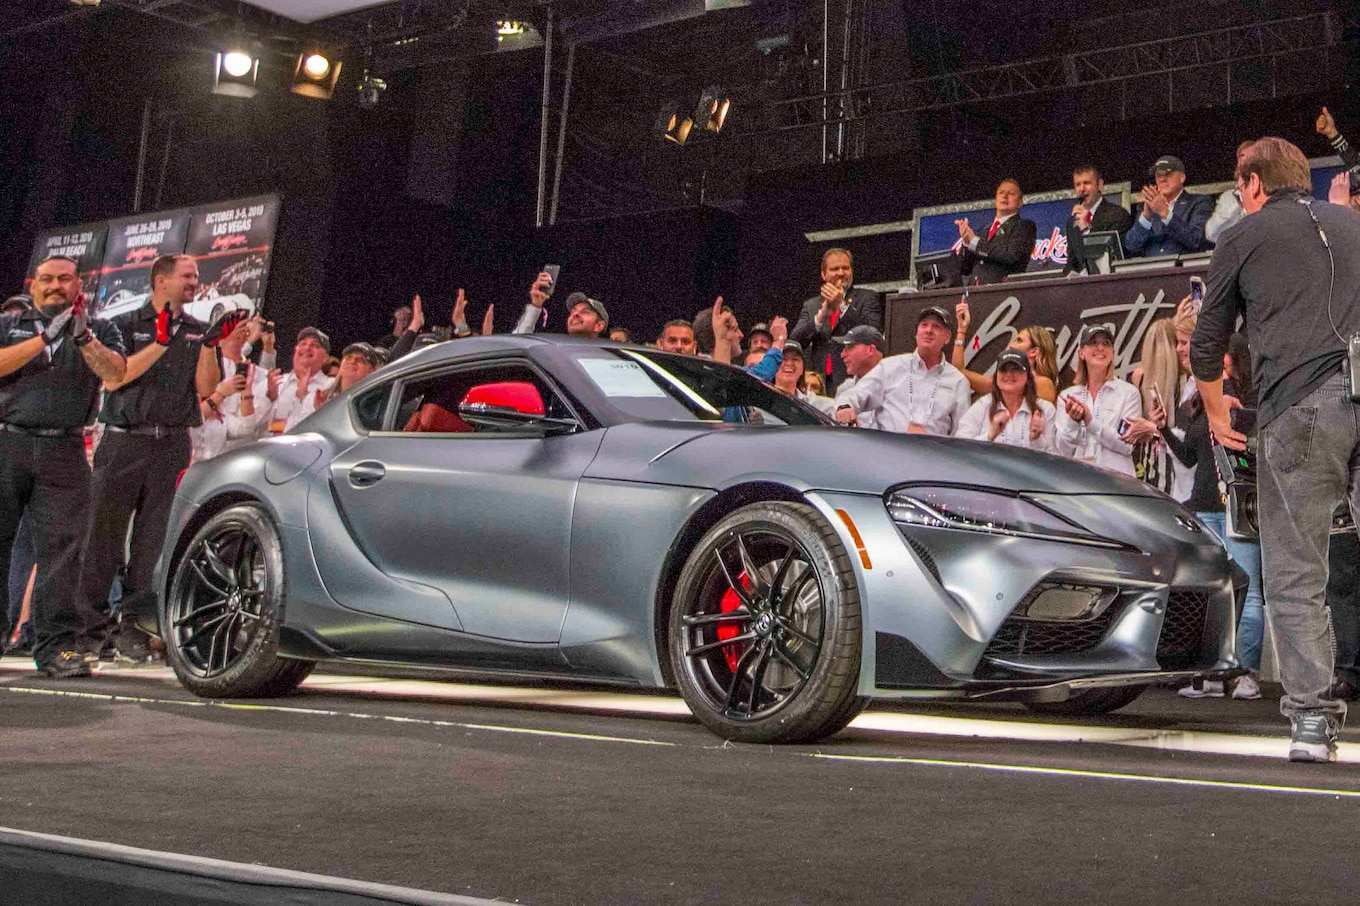 18 All New Who Bought The 2020 Toyota Supra At Barrett Jackson Rumors with Who Bought The 2020 Toyota Supra At Barrett Jackson